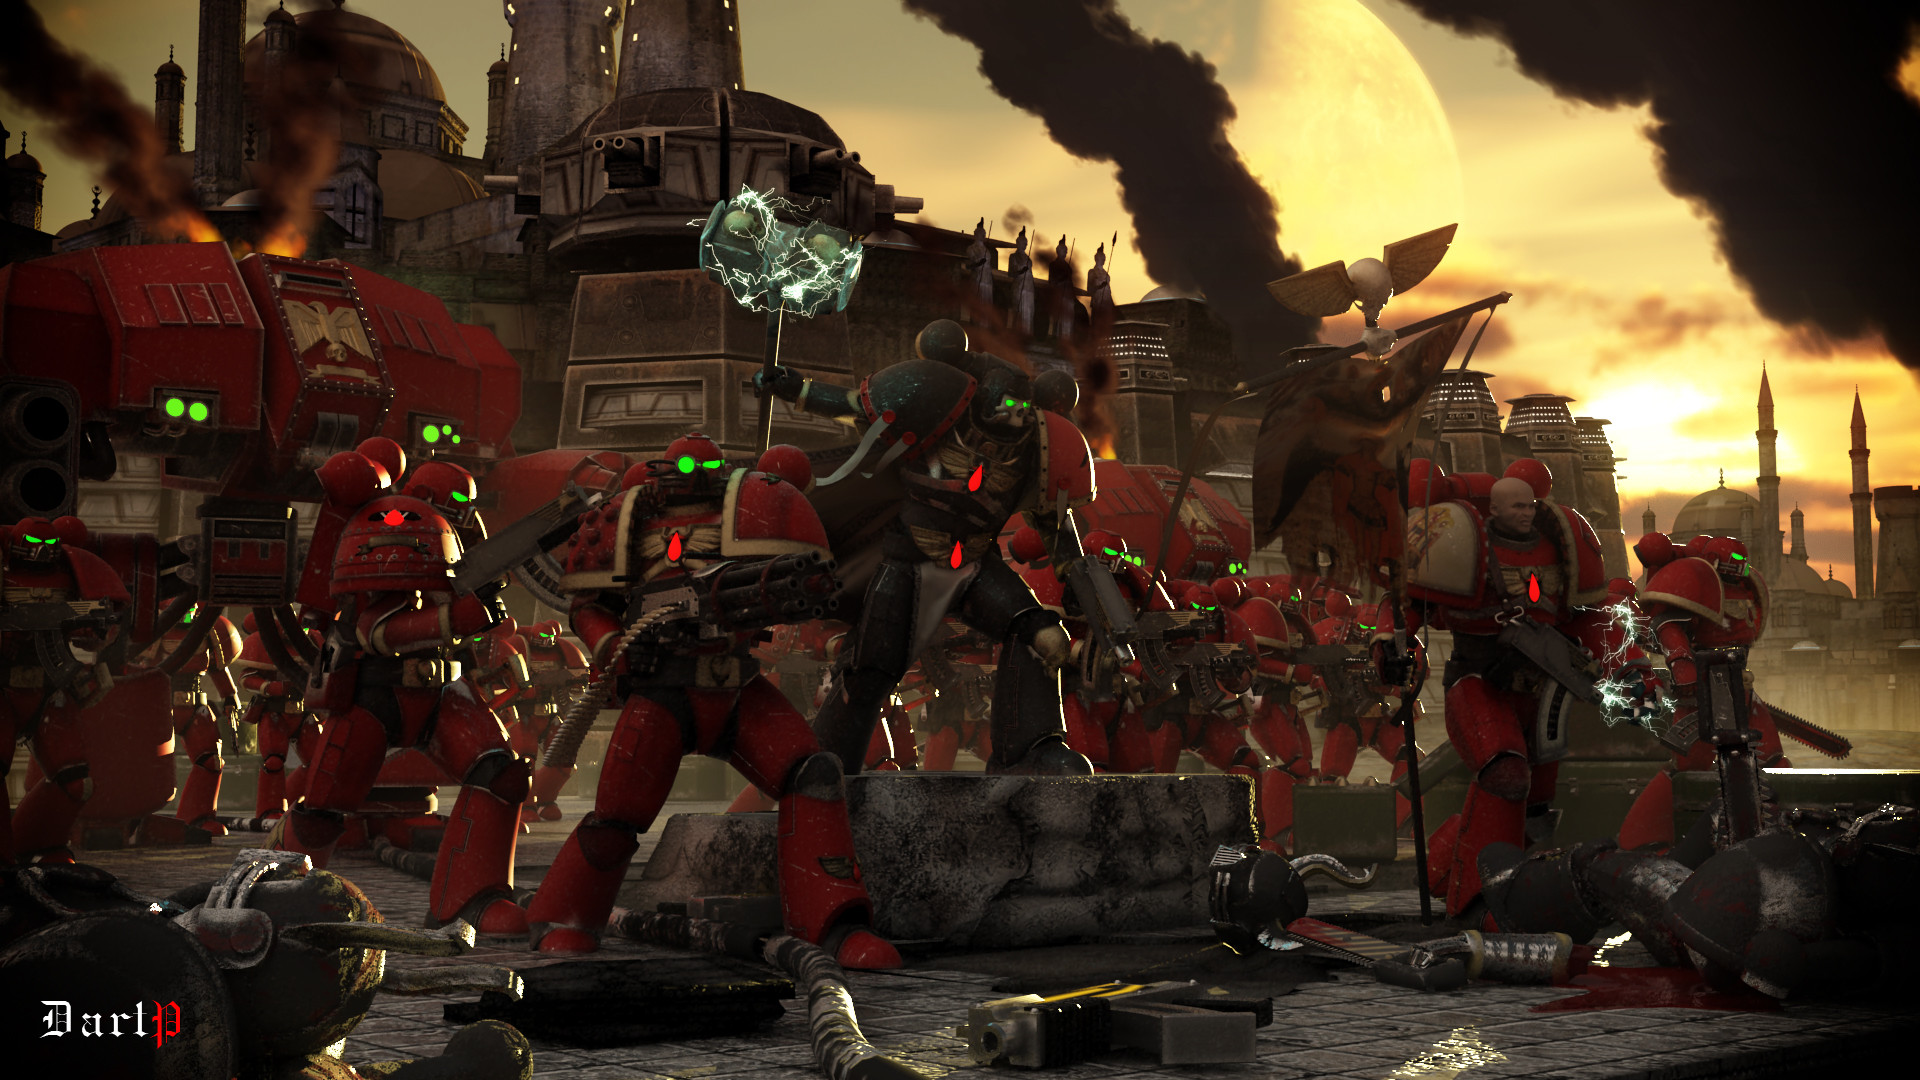 1920x1080 Warhammer 40k art about 3d blood_angels bolter chainsword chaos dartp .